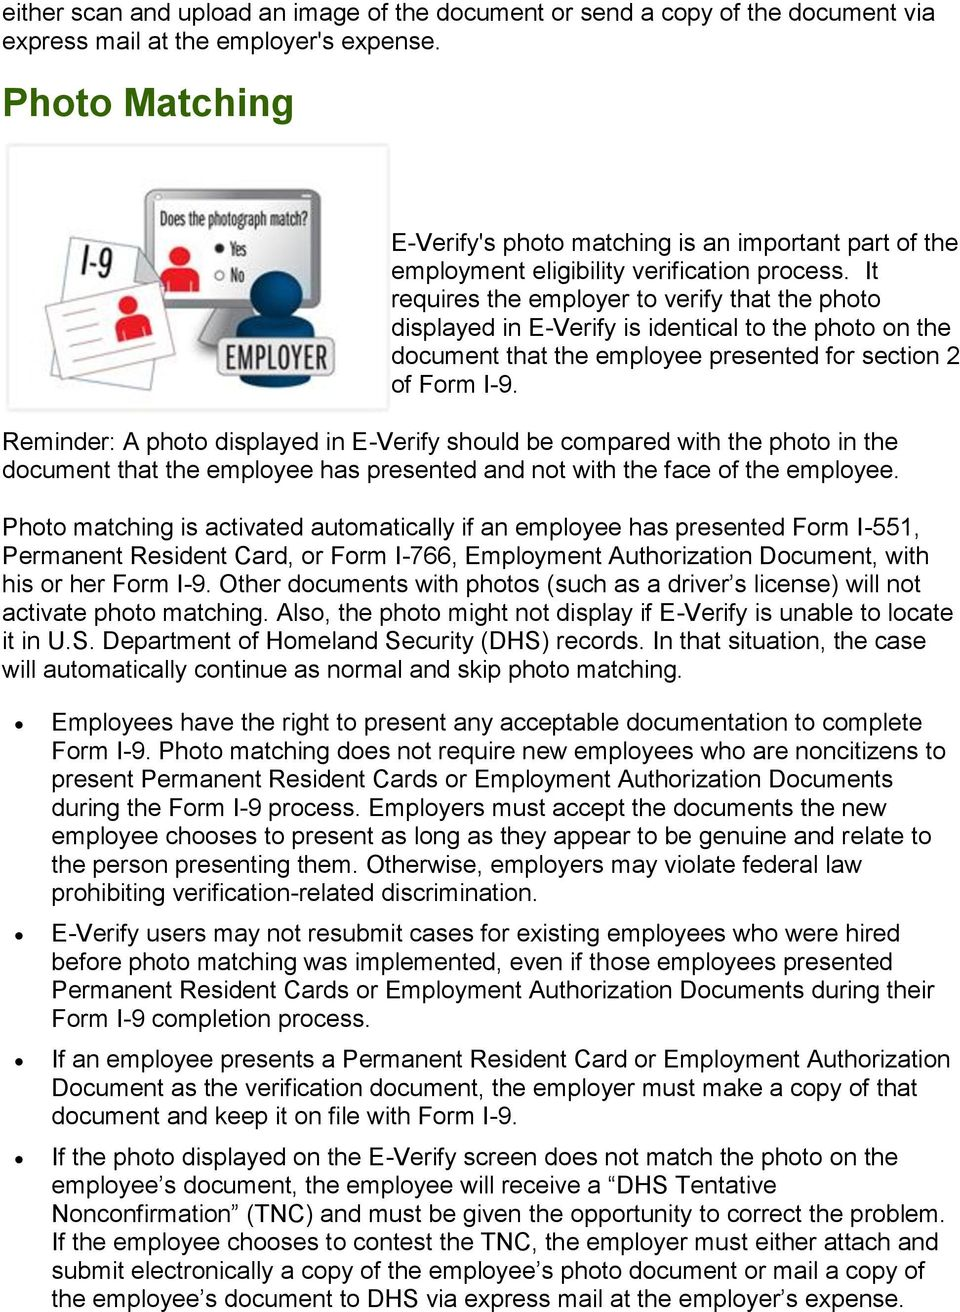 It requires the employer to verify that the photo displayed in E-Verify is identical to the photo on the document that the employee presented for section 2 of Form I-9.